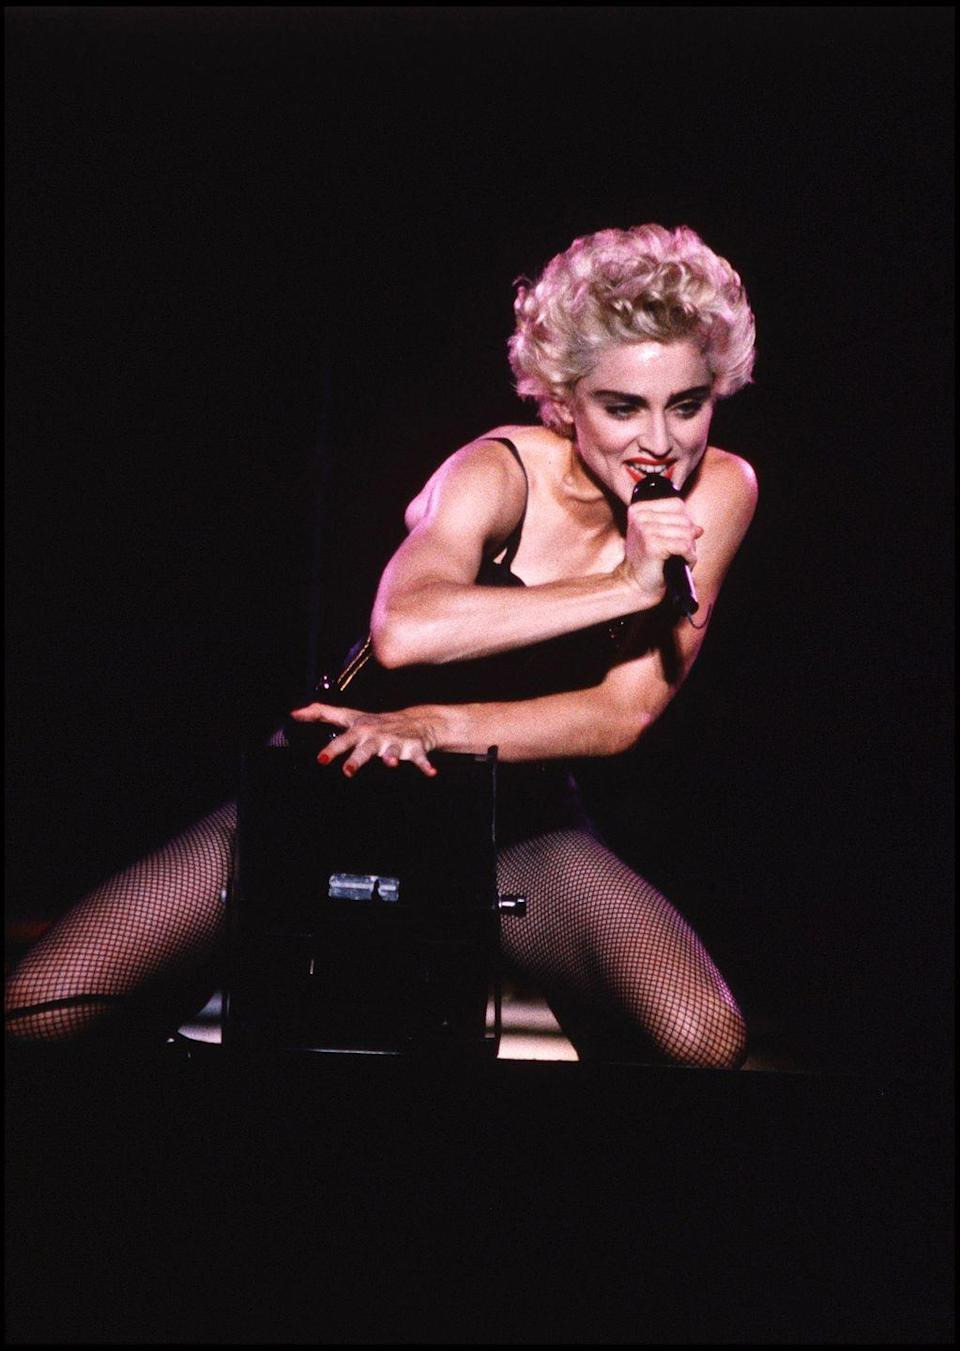 <p>She's referred to as the Queen of Pop, with her career taking off in 1982 with the hits <em>Lucky Star, Borderline, </em>and <em>Like a Virgin. </em>Madonna's style made her a true icon in the '80s as she pushed the envelope with her sexual expression and powerful message.</p>